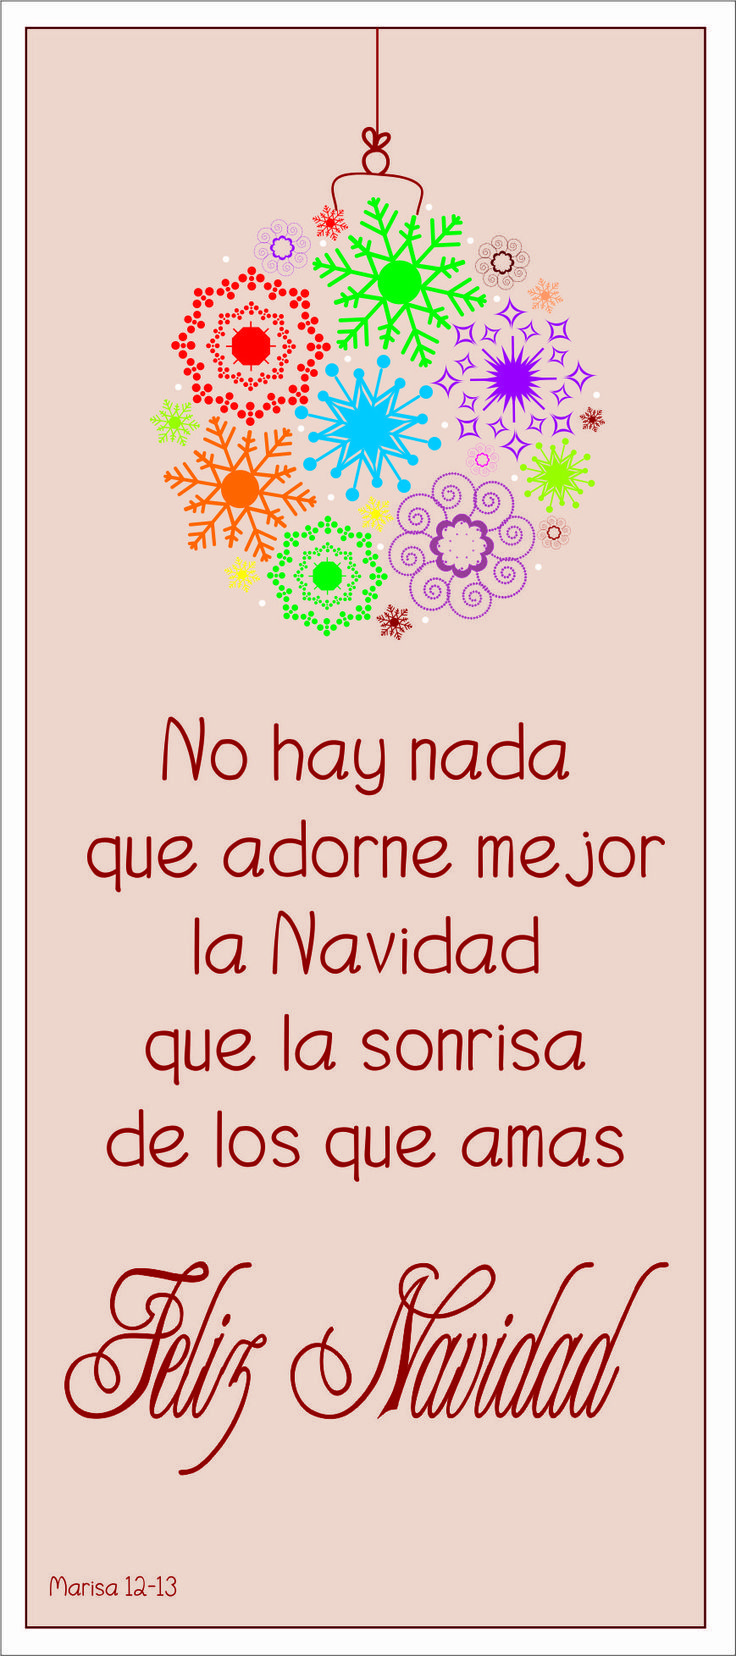 94 best Frases y Pensamientos images on Pinterest ...